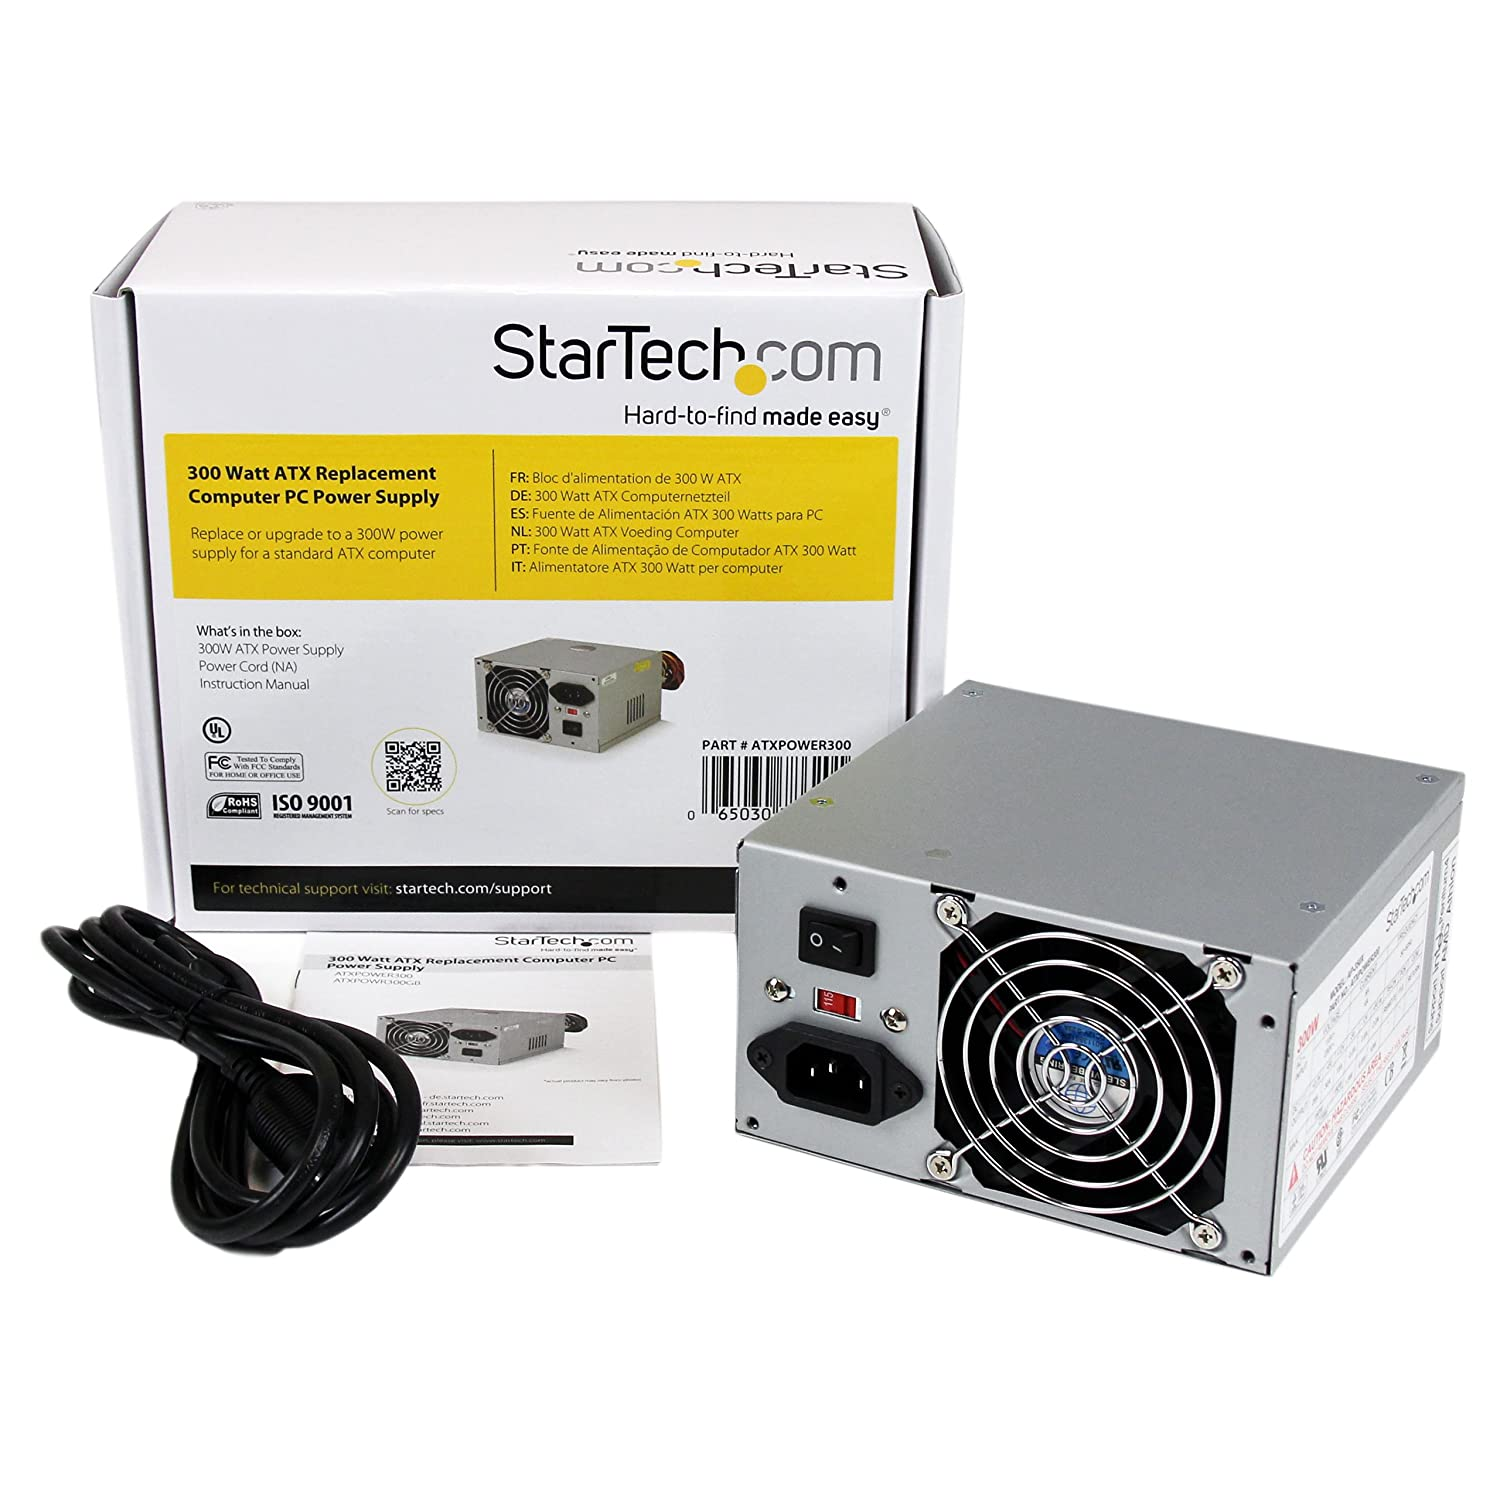 Amazon.com: StarTech.com 300 Watt ATX Replacement Computer PC Power ...